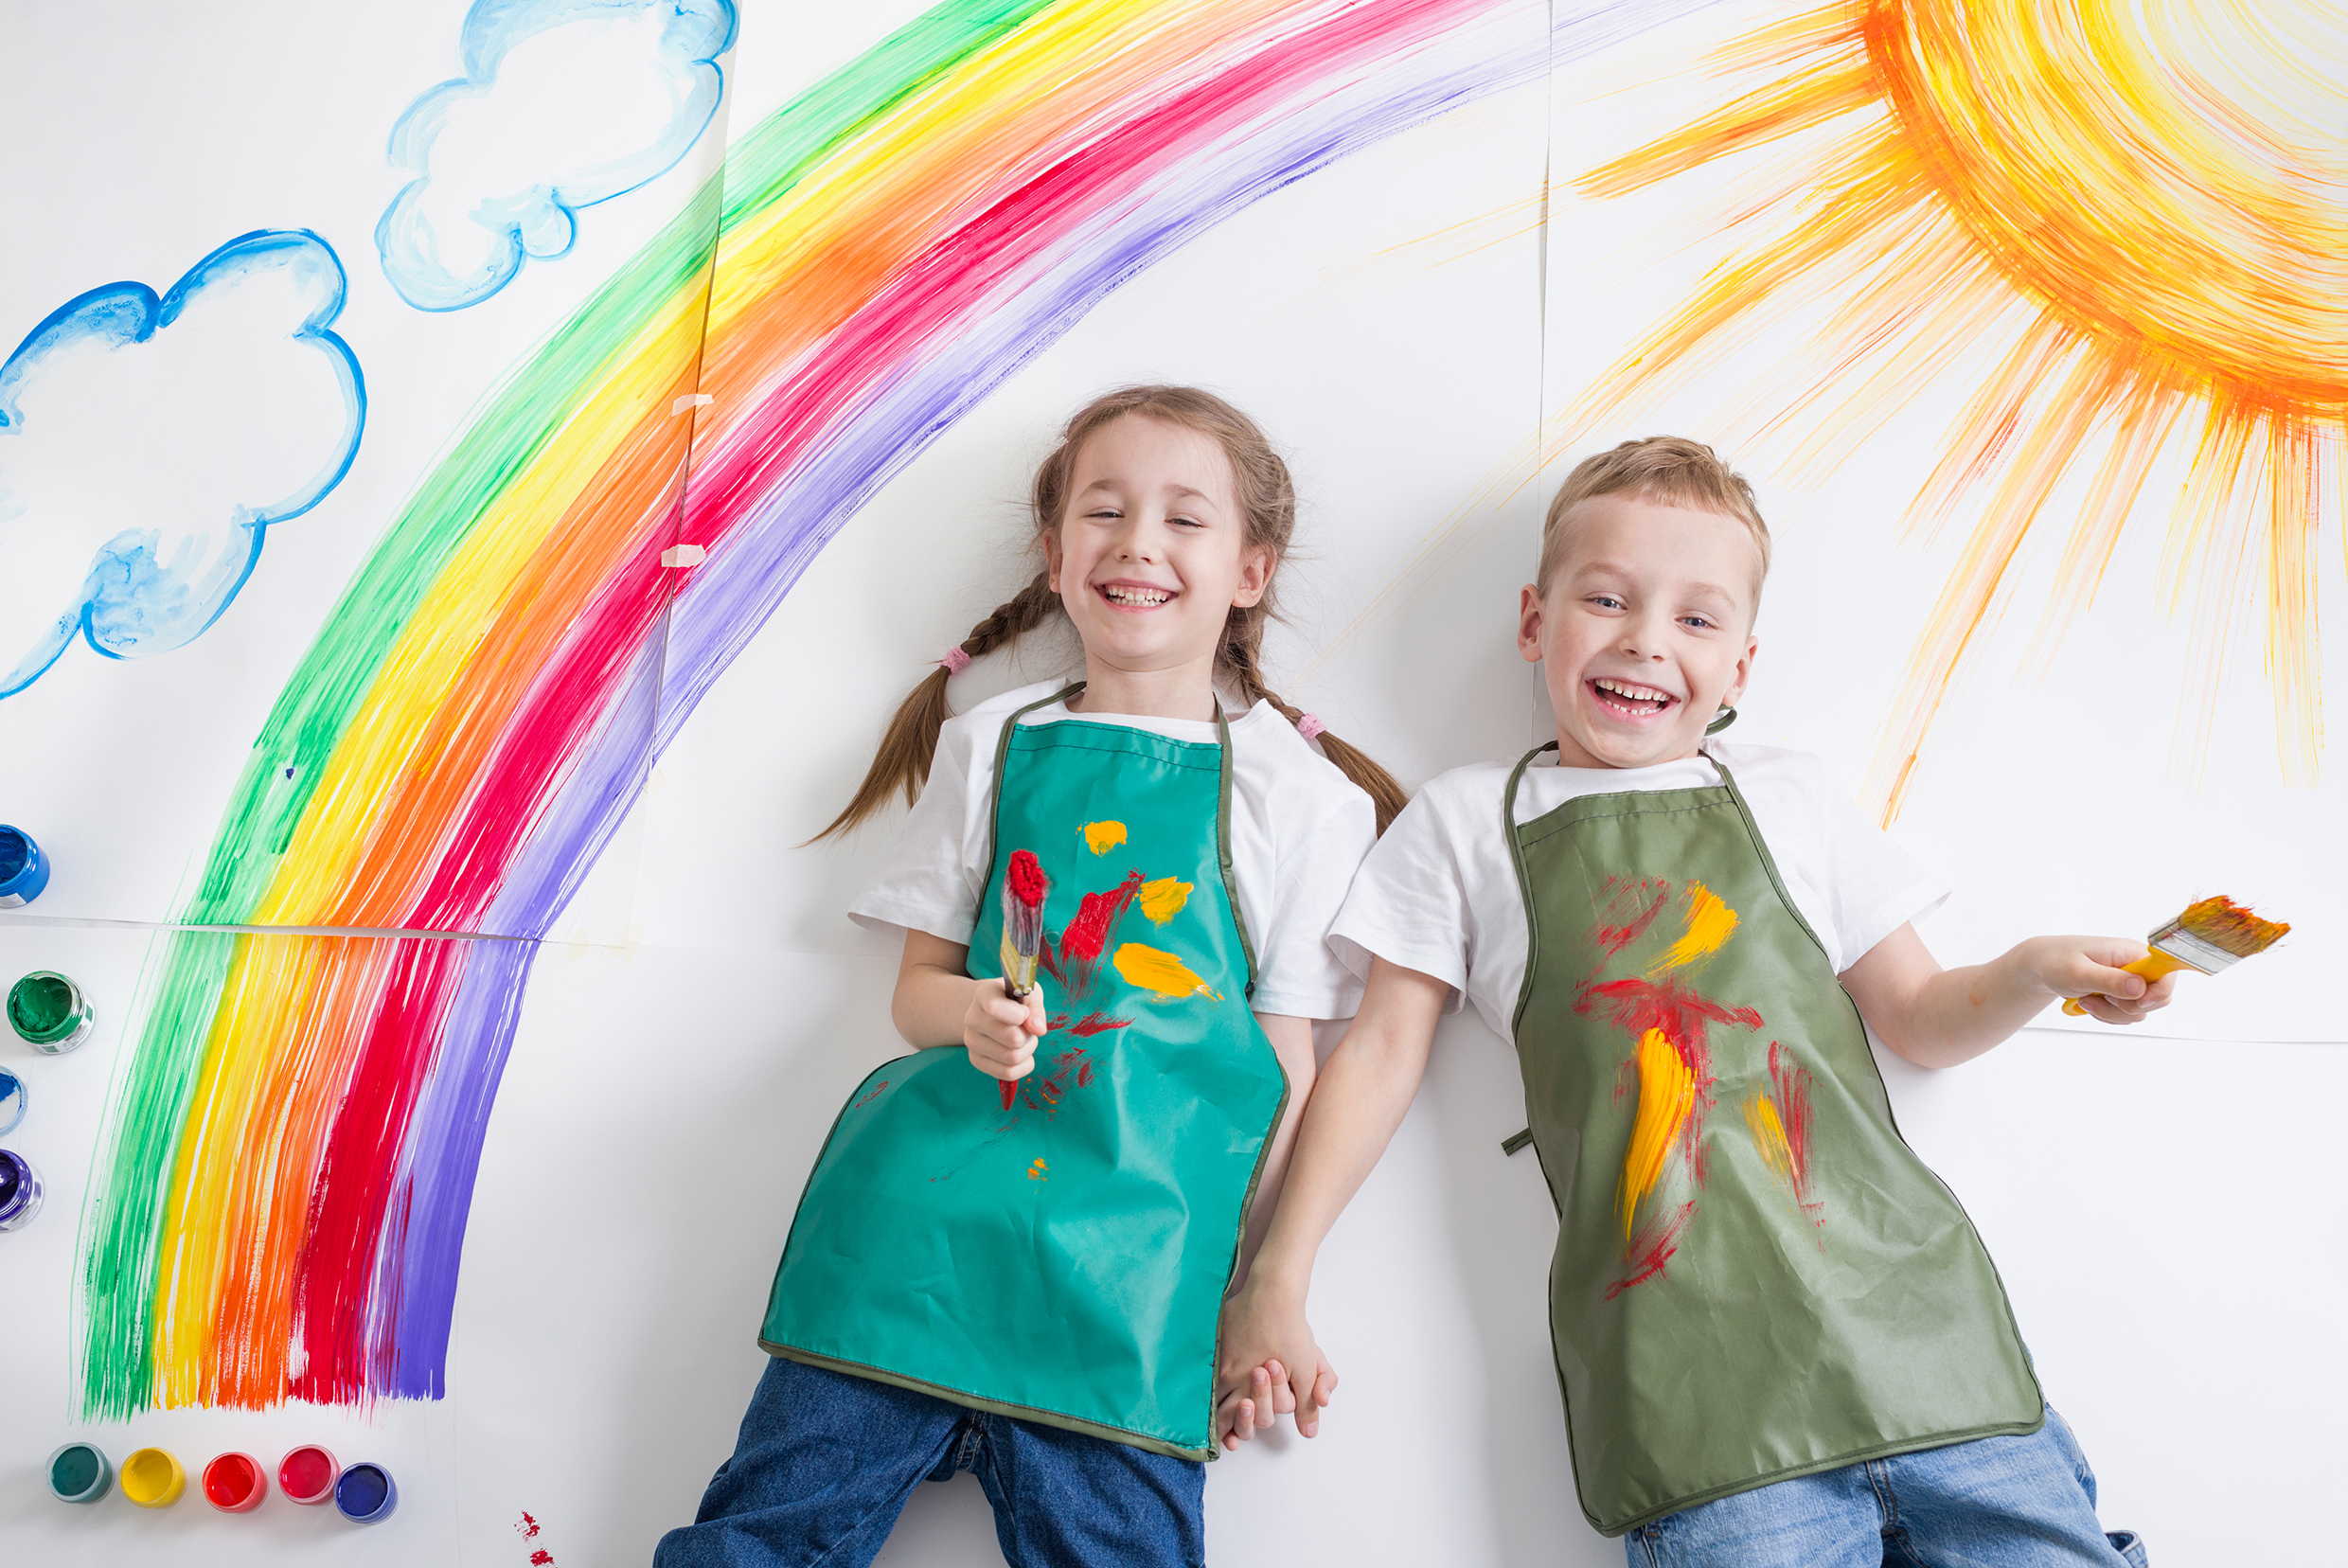 Photograph of two children with aprons on standing under a painted rainbow.